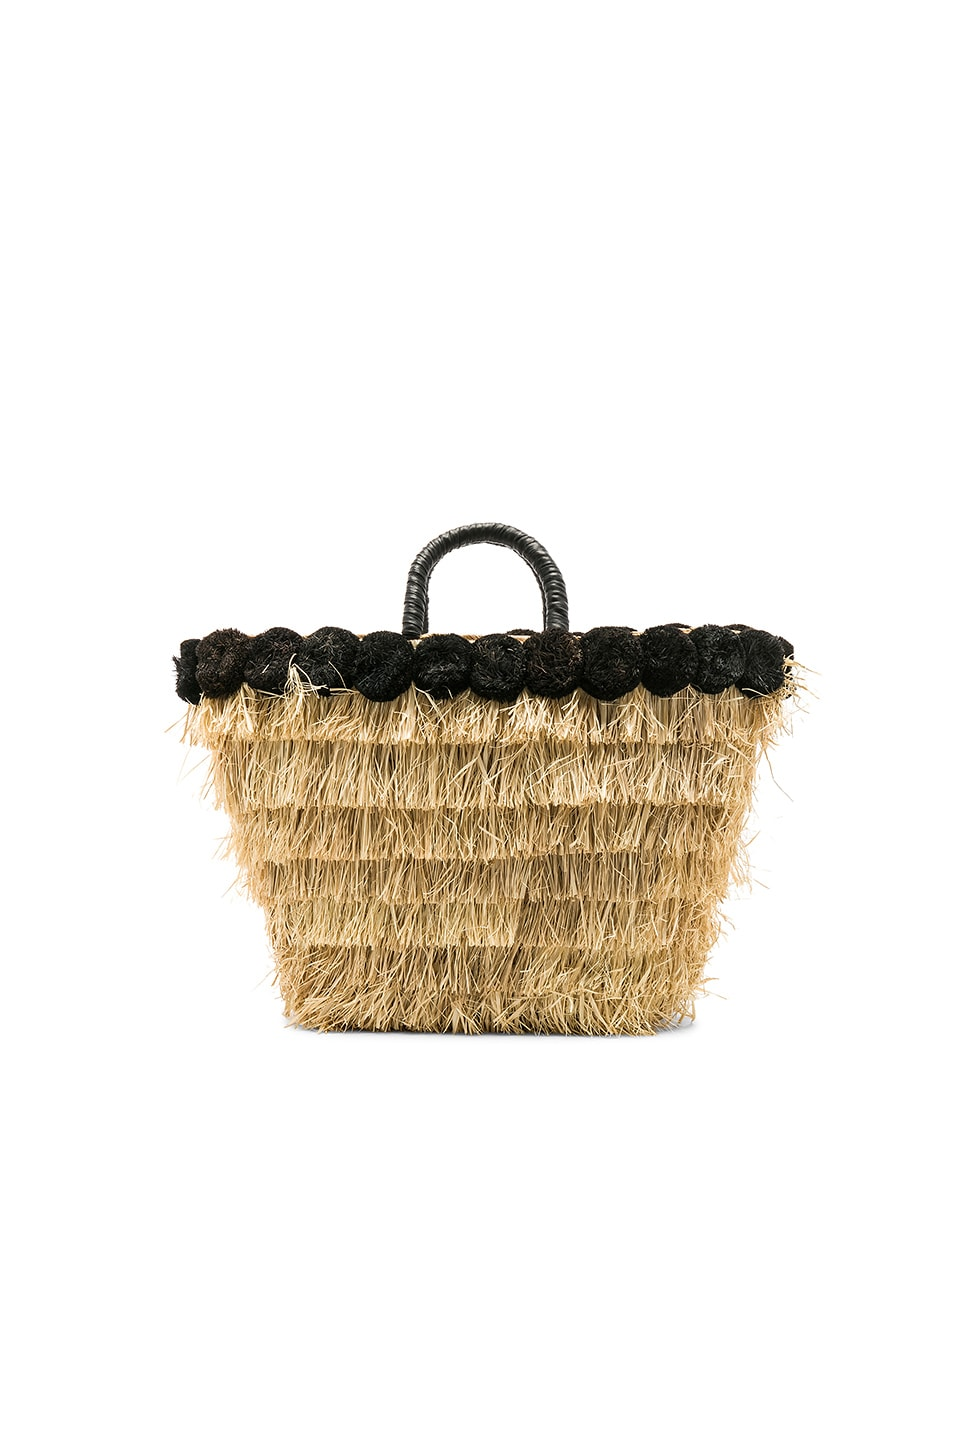 Lucca Tote